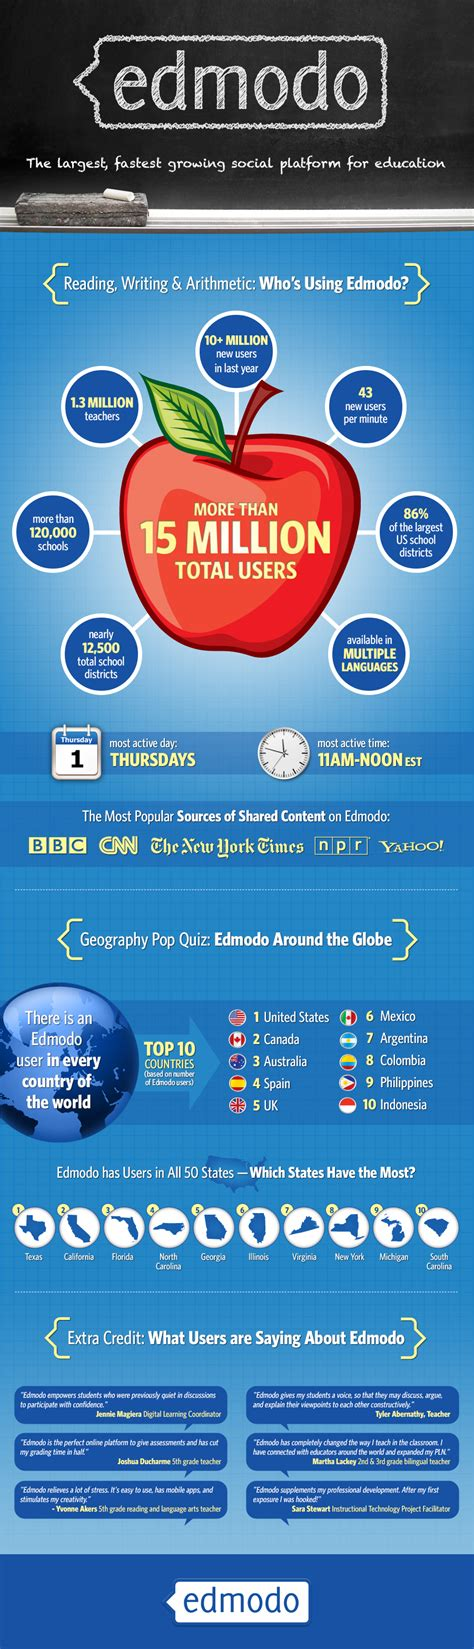 edmodo learning online education edmodo edmodo infographic learn more about the larges